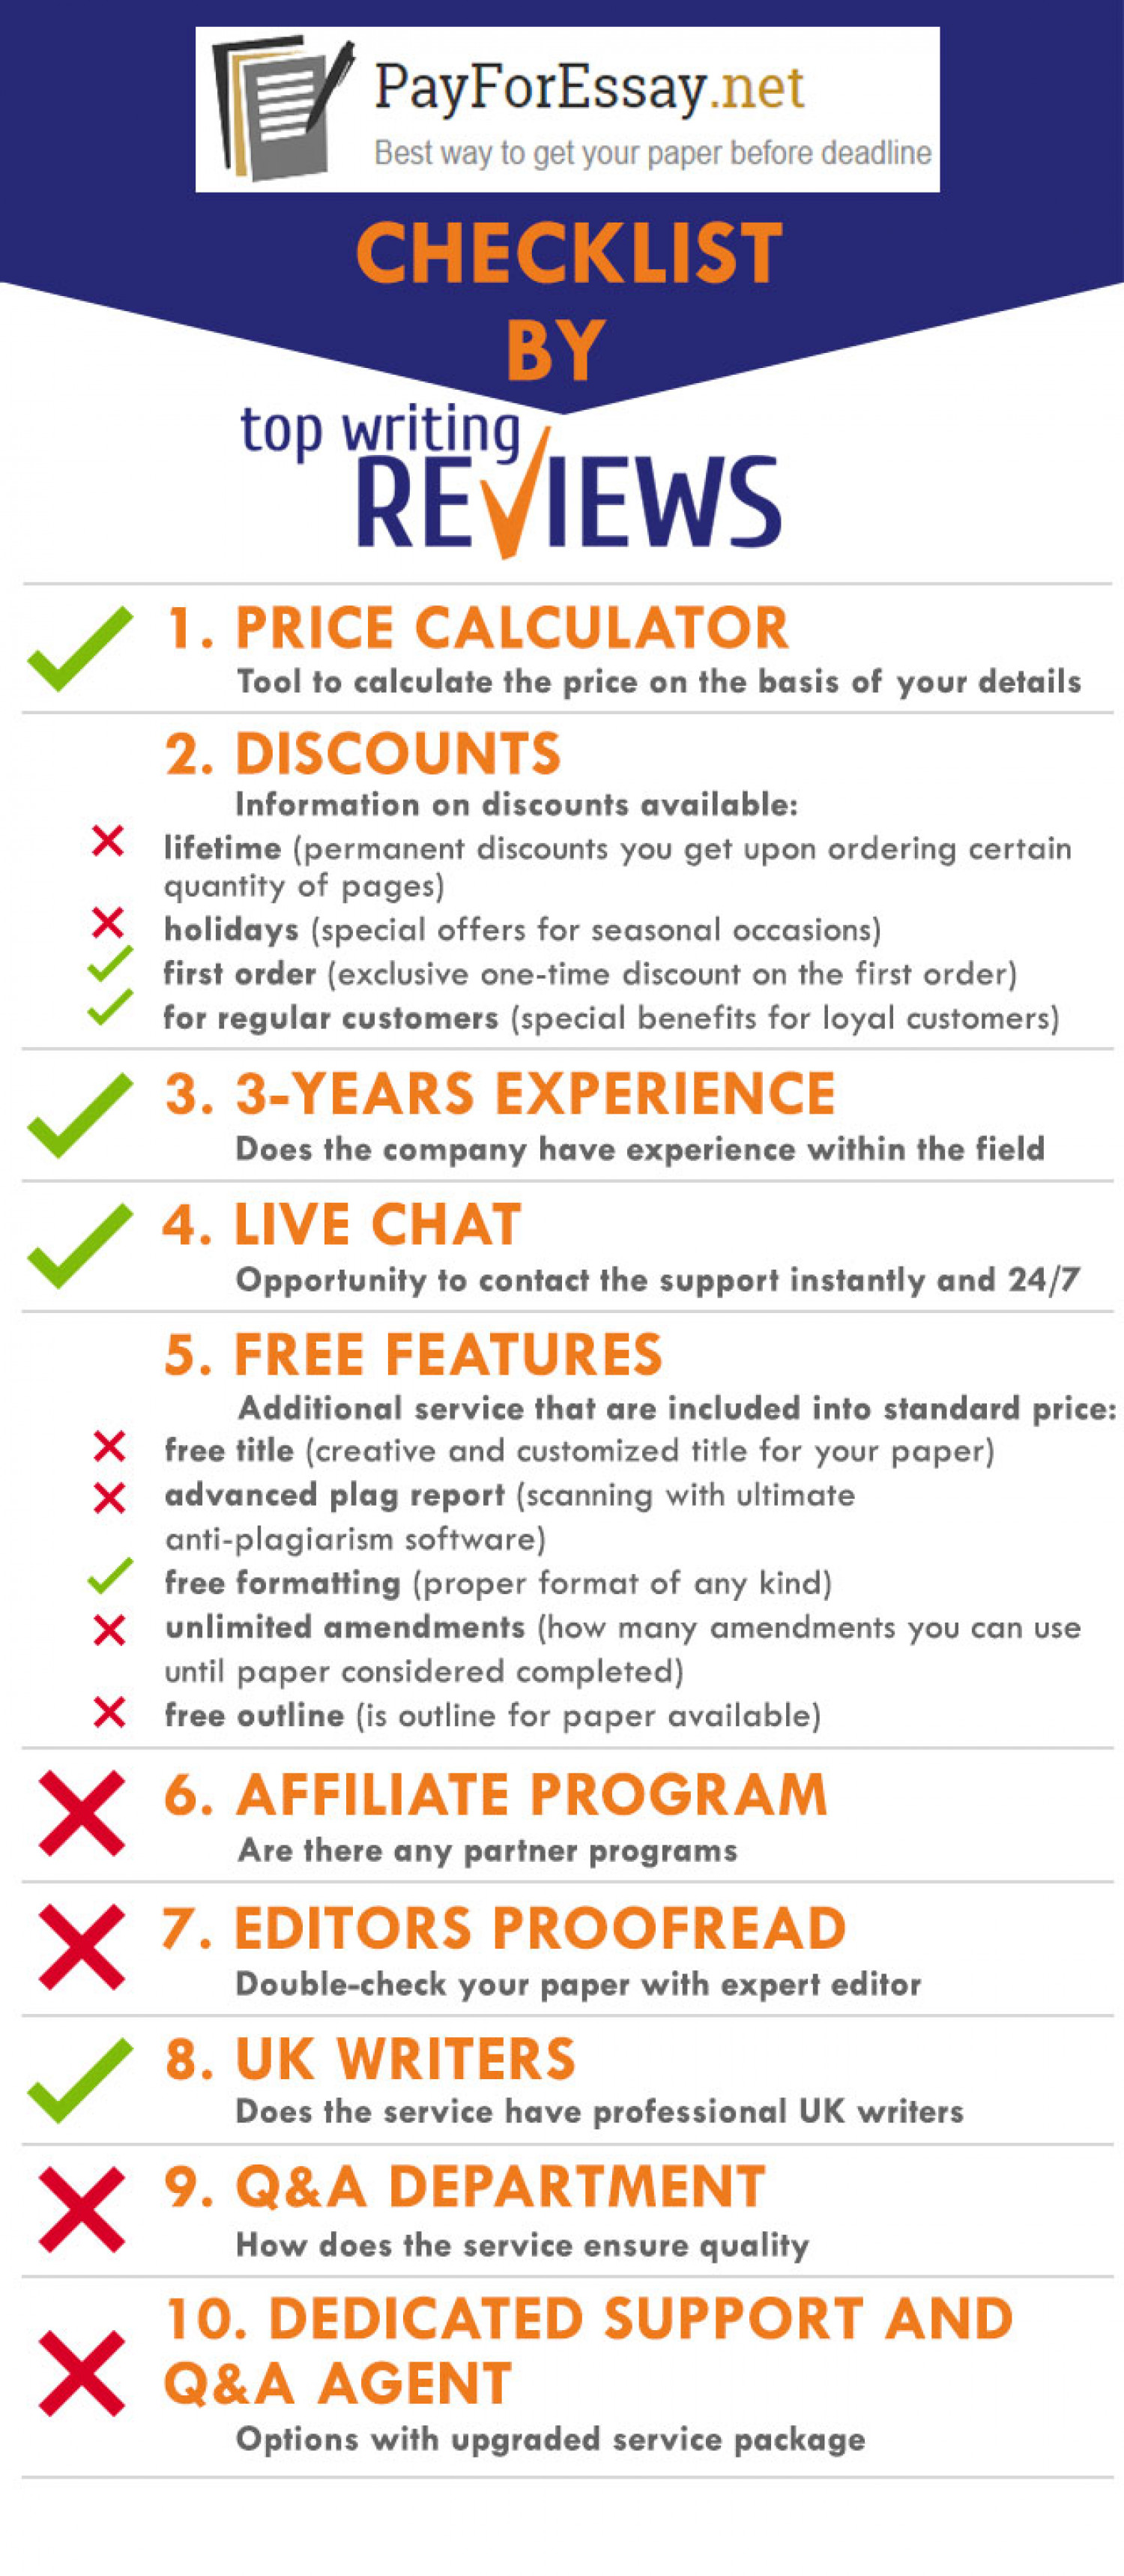 Looking for info about PayForEssay writing service? Read this checklist we prepared for you! Infographic